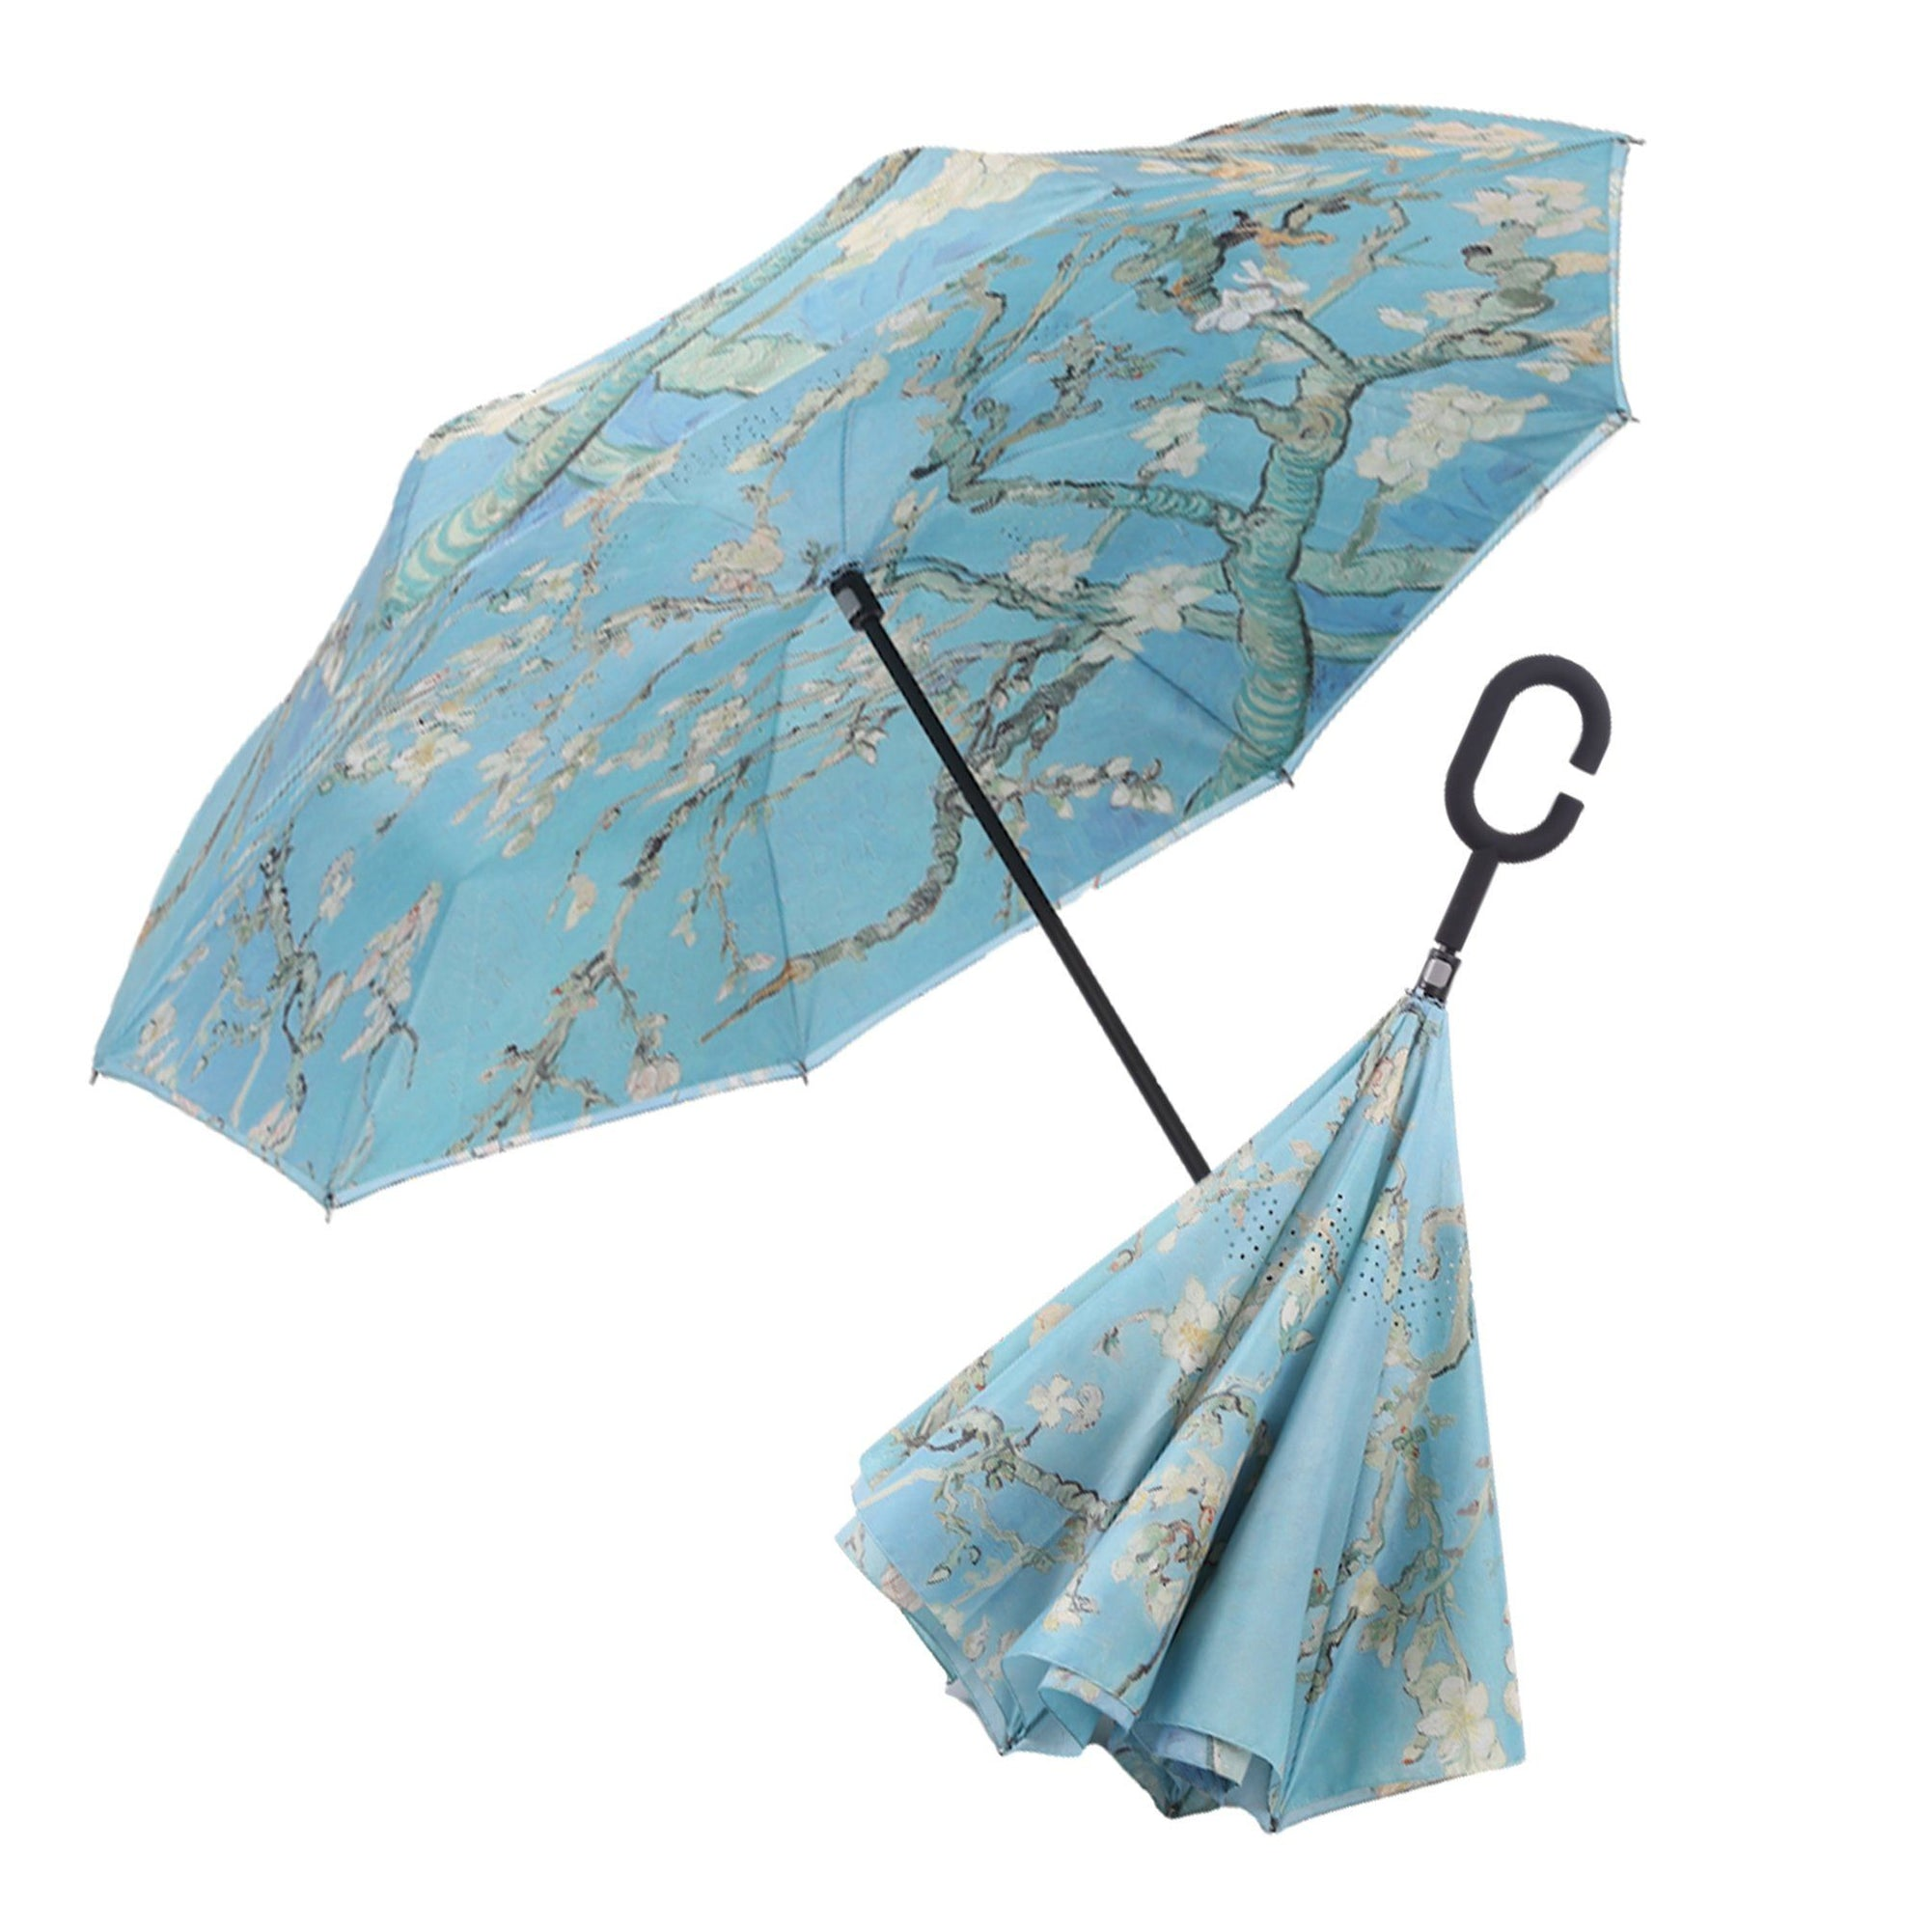 A video of a RainCaper Van Gogh Almond Blossom reverse (inside-out) umbrella opening and closing